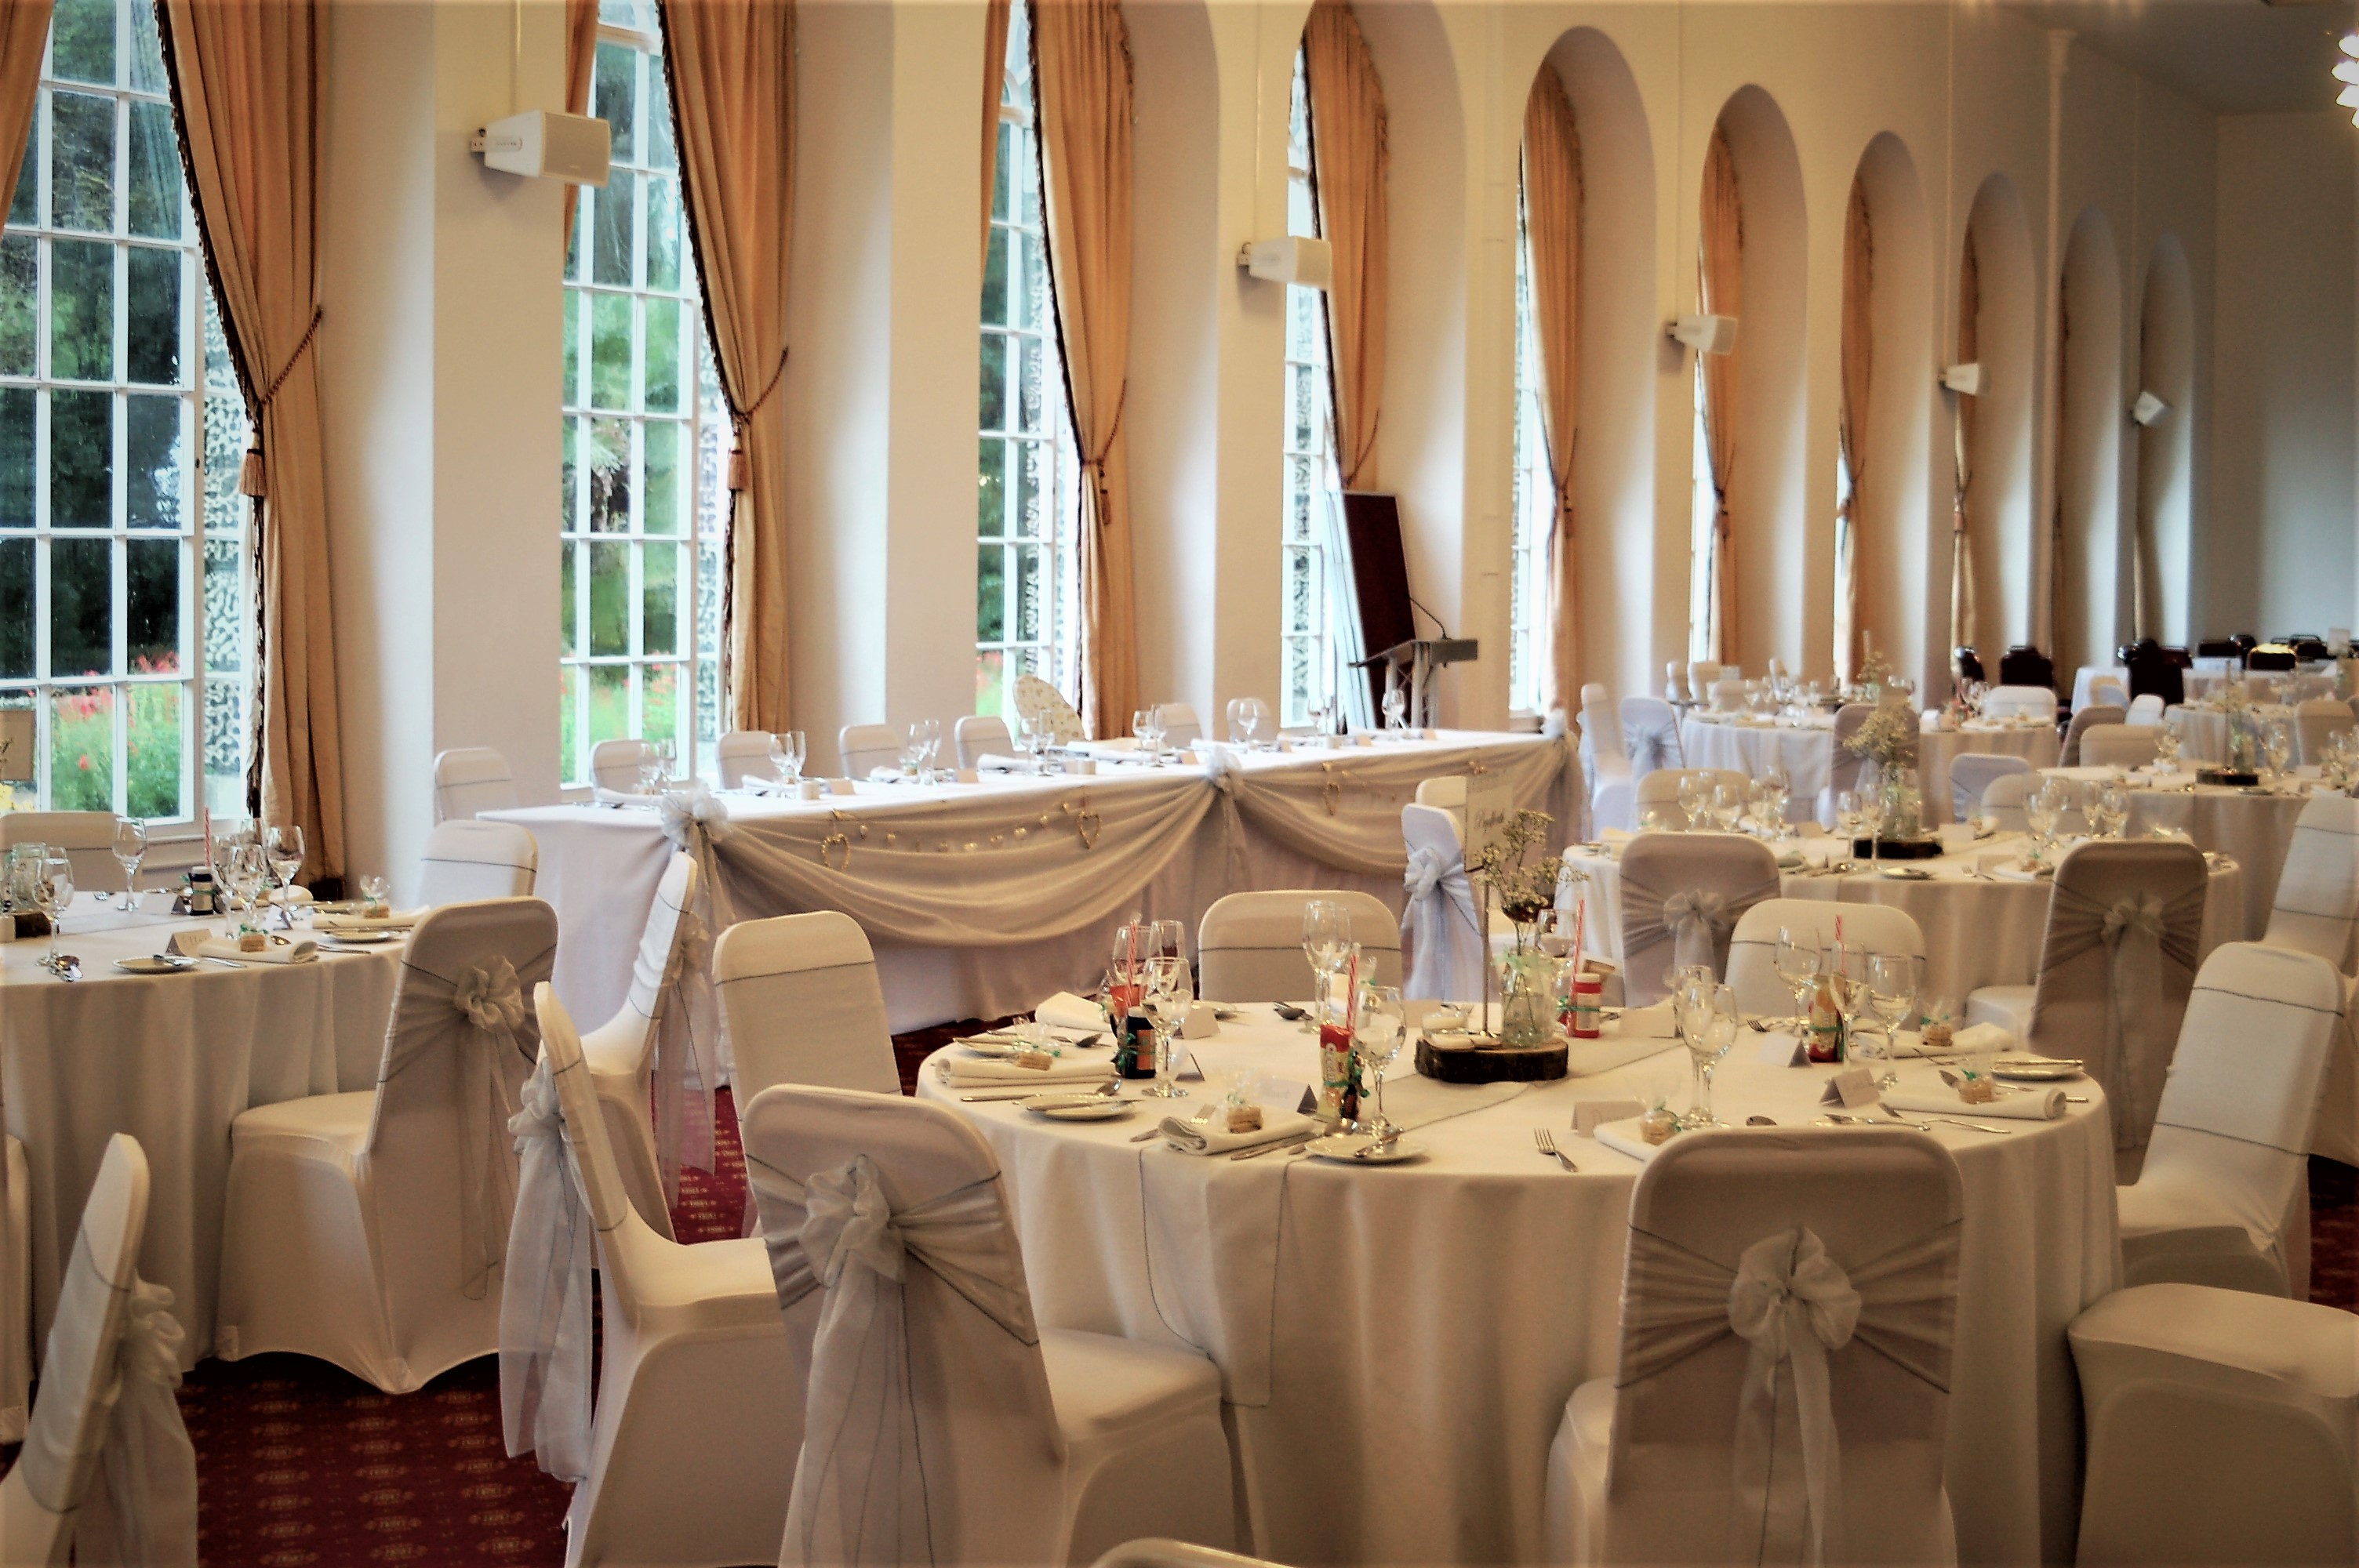 wedding chair covers swansea custom indoor cushions decoration hire wales have you got it covered